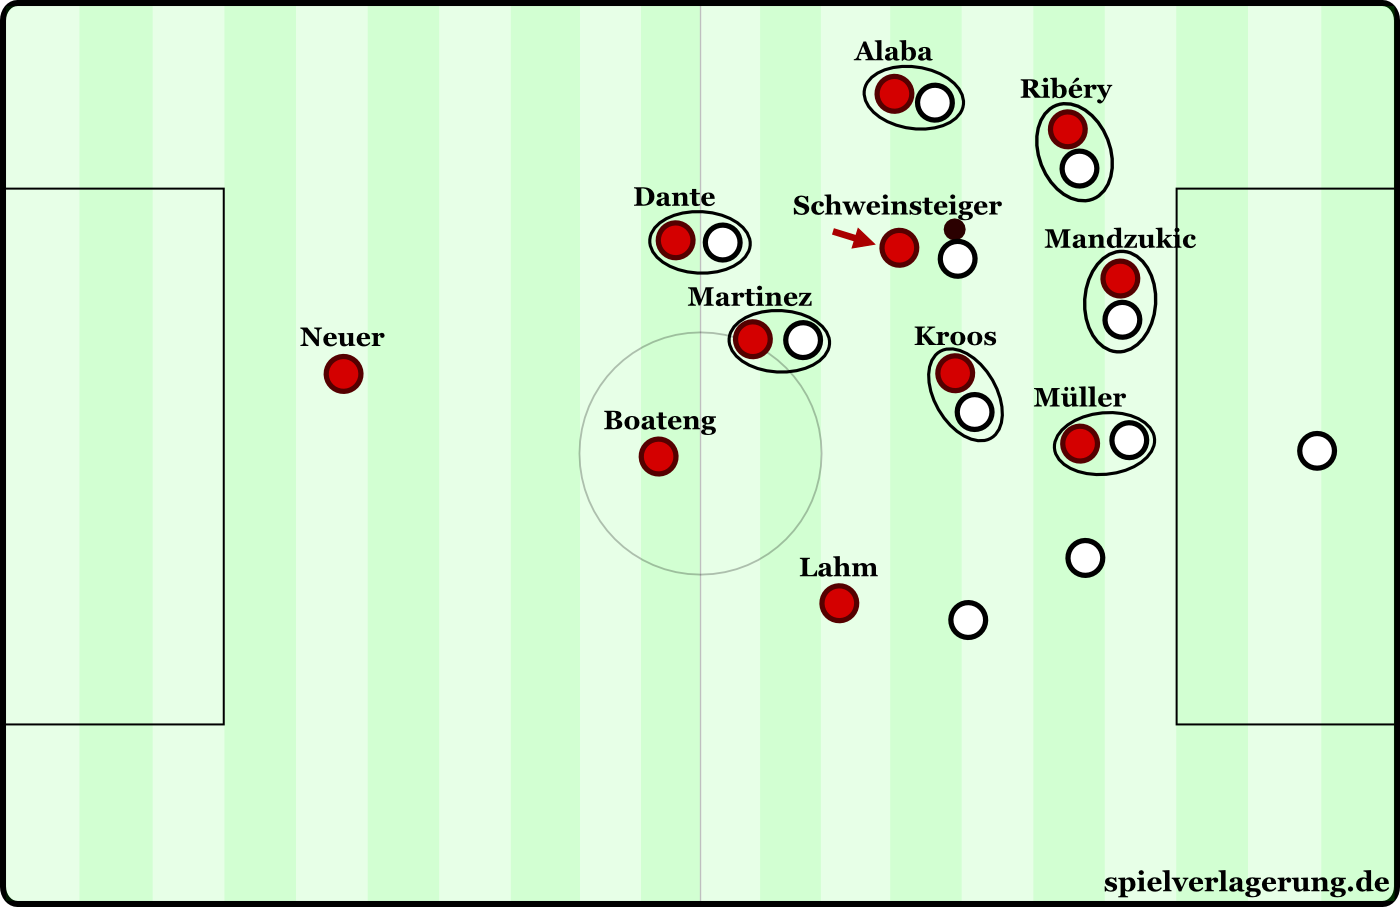 Heynckes' manoriented counterpress